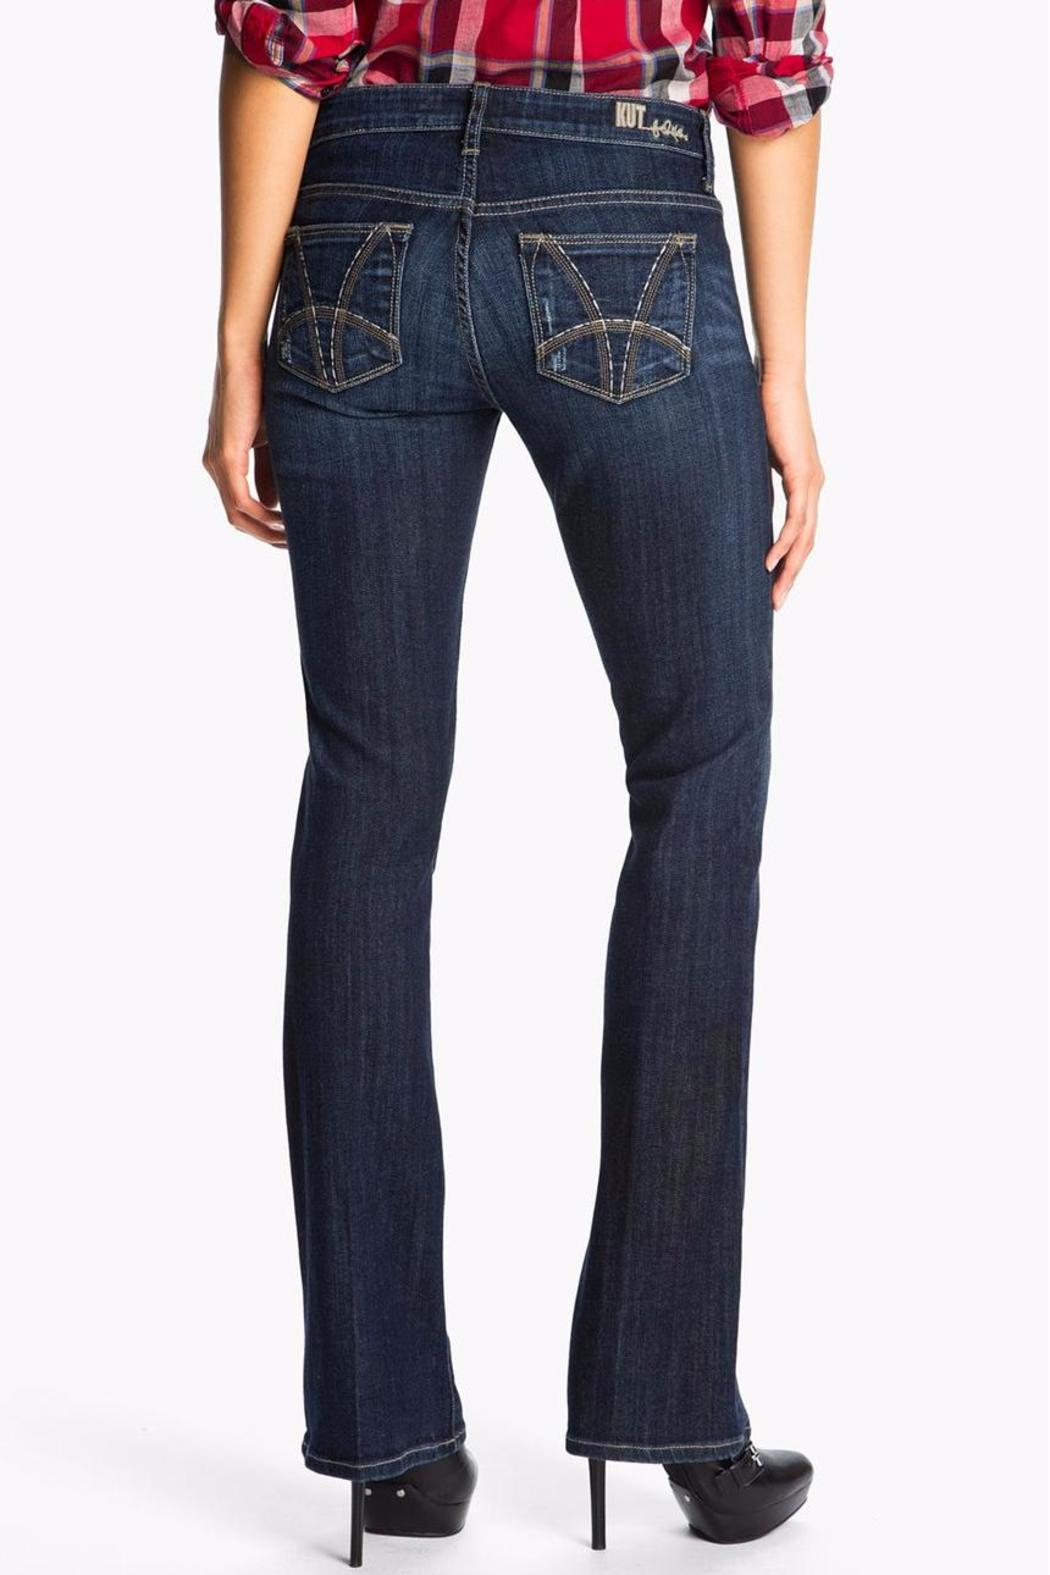 Kut from the Kloth Baby Bootcut Jeans - Front Full Image